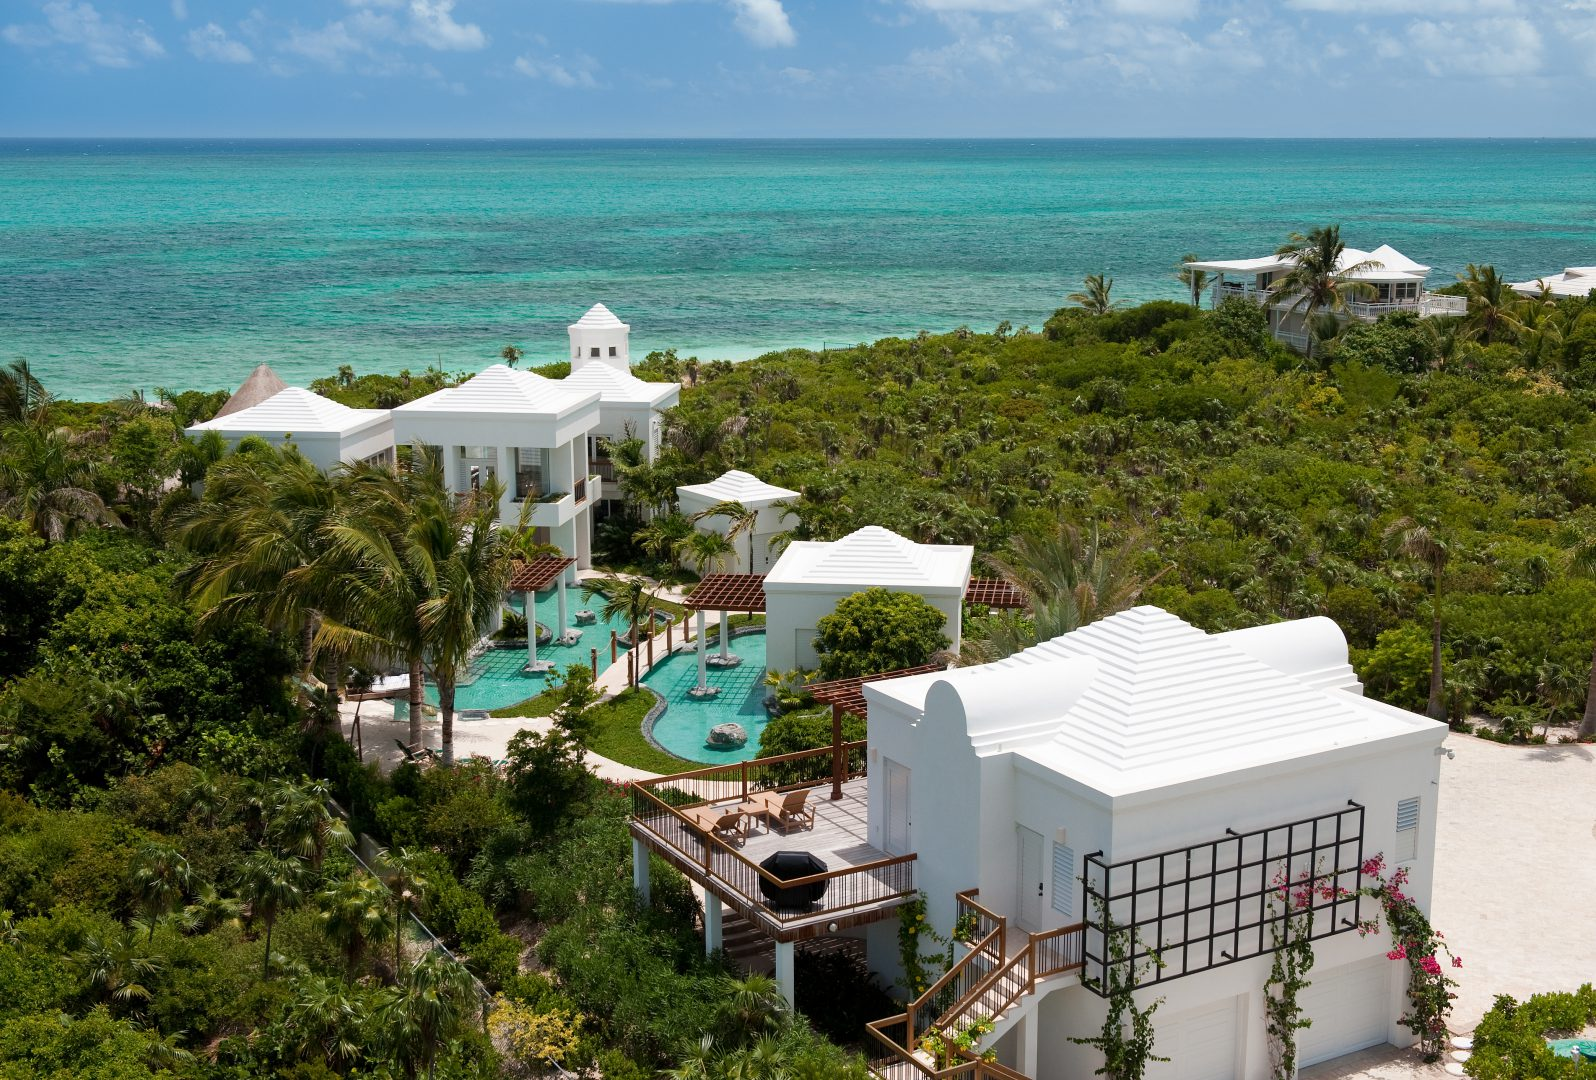 Turtle Breeze Villa Architecture in Turks and Caicos